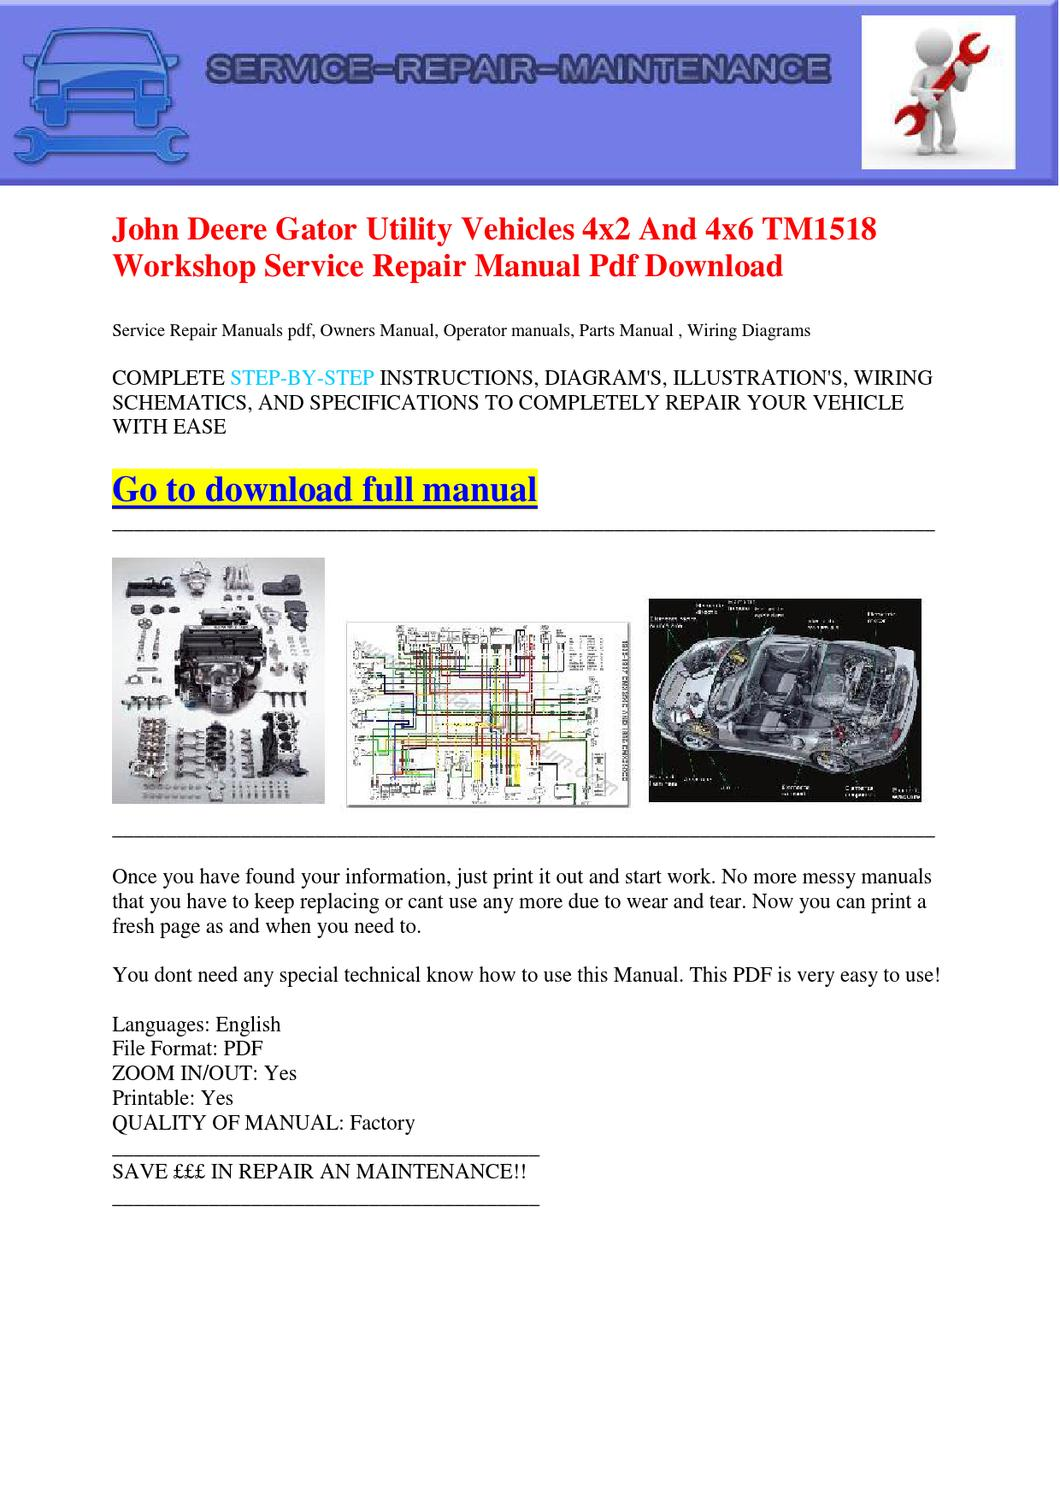 Tm1518 Manual Free Download John Deere 5410 Wiring Diagram Gator Utility Vehicles 4x2 And 4x6